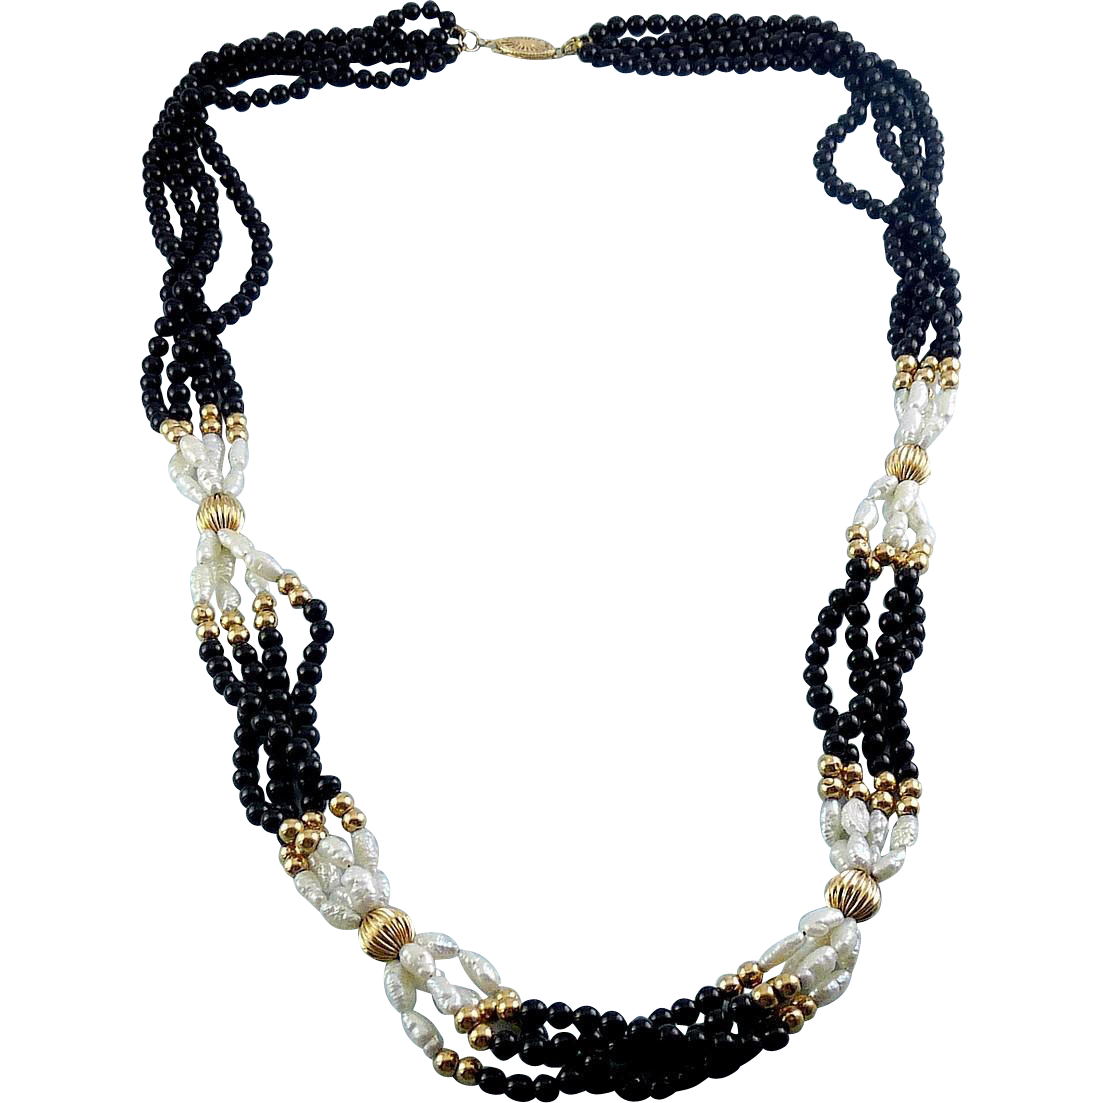 4-Strand Pearl, Black Onyx & 14K Gold Beads Necklace - 25 Inches Long